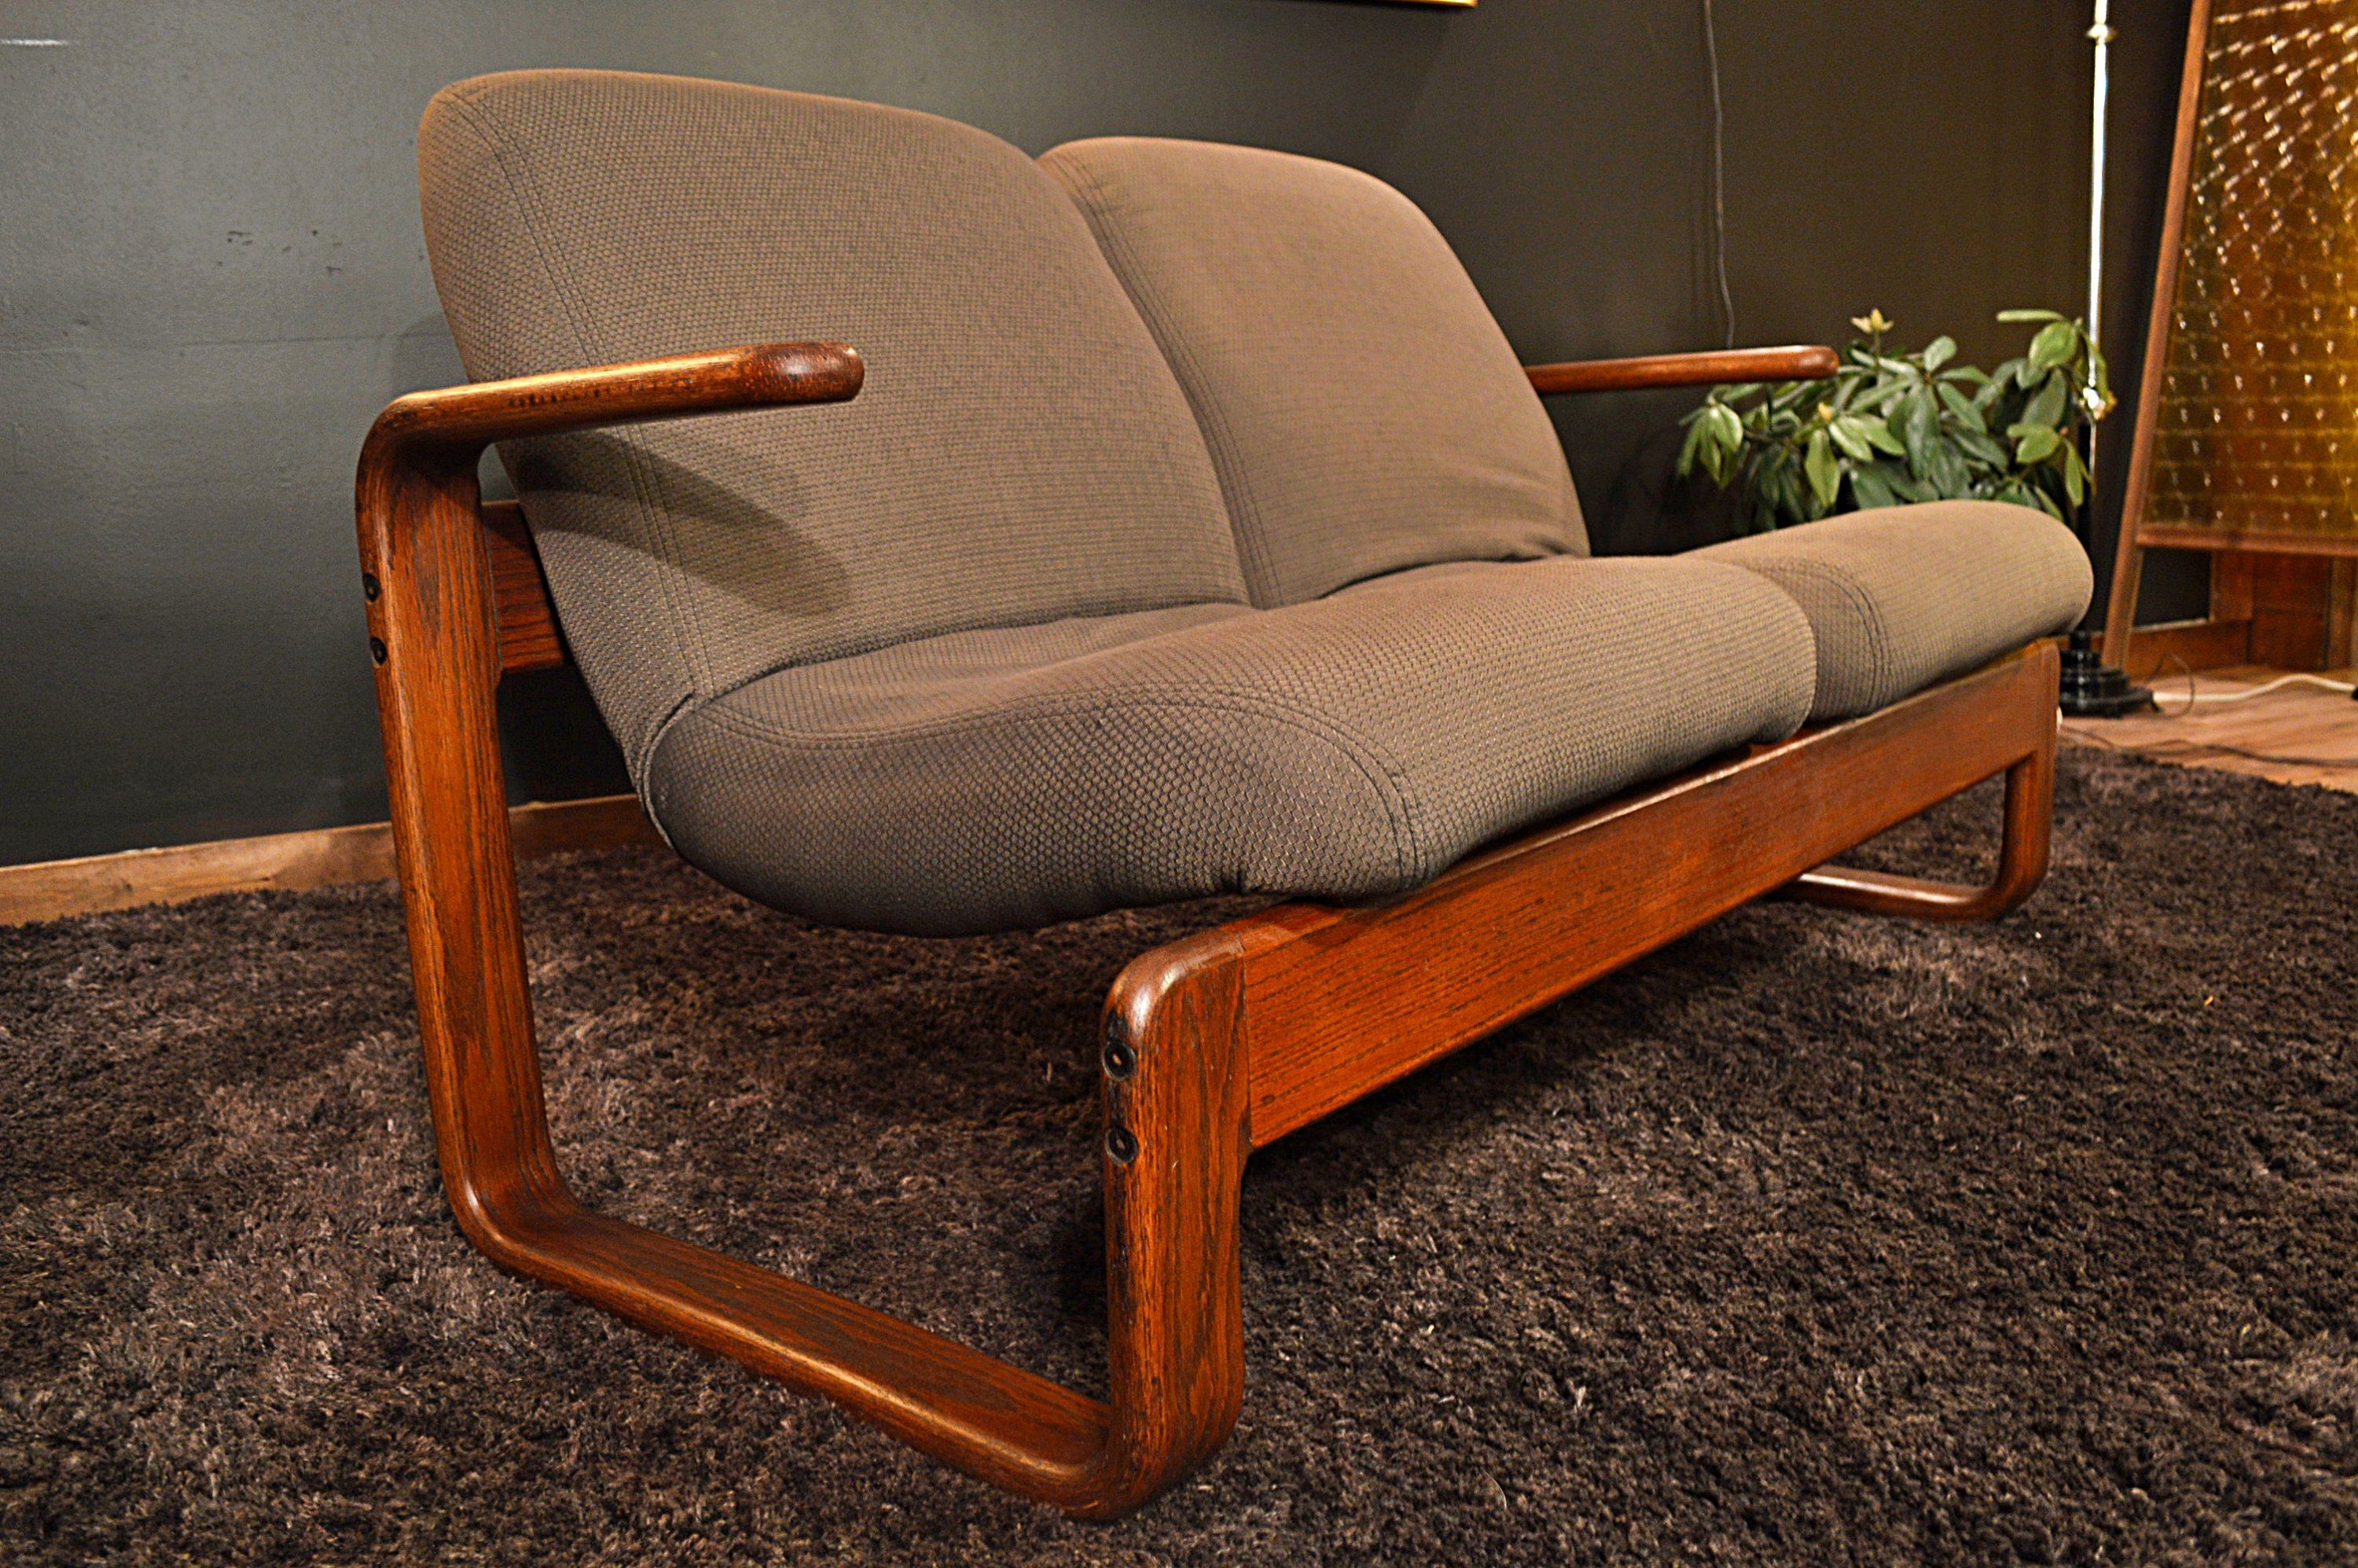 Mid Century Westnofa Style Scandanavian Bentwood Loveseat By Dirtygirlsantiques On Etsy Love Seat Mid Century Wood Pieces